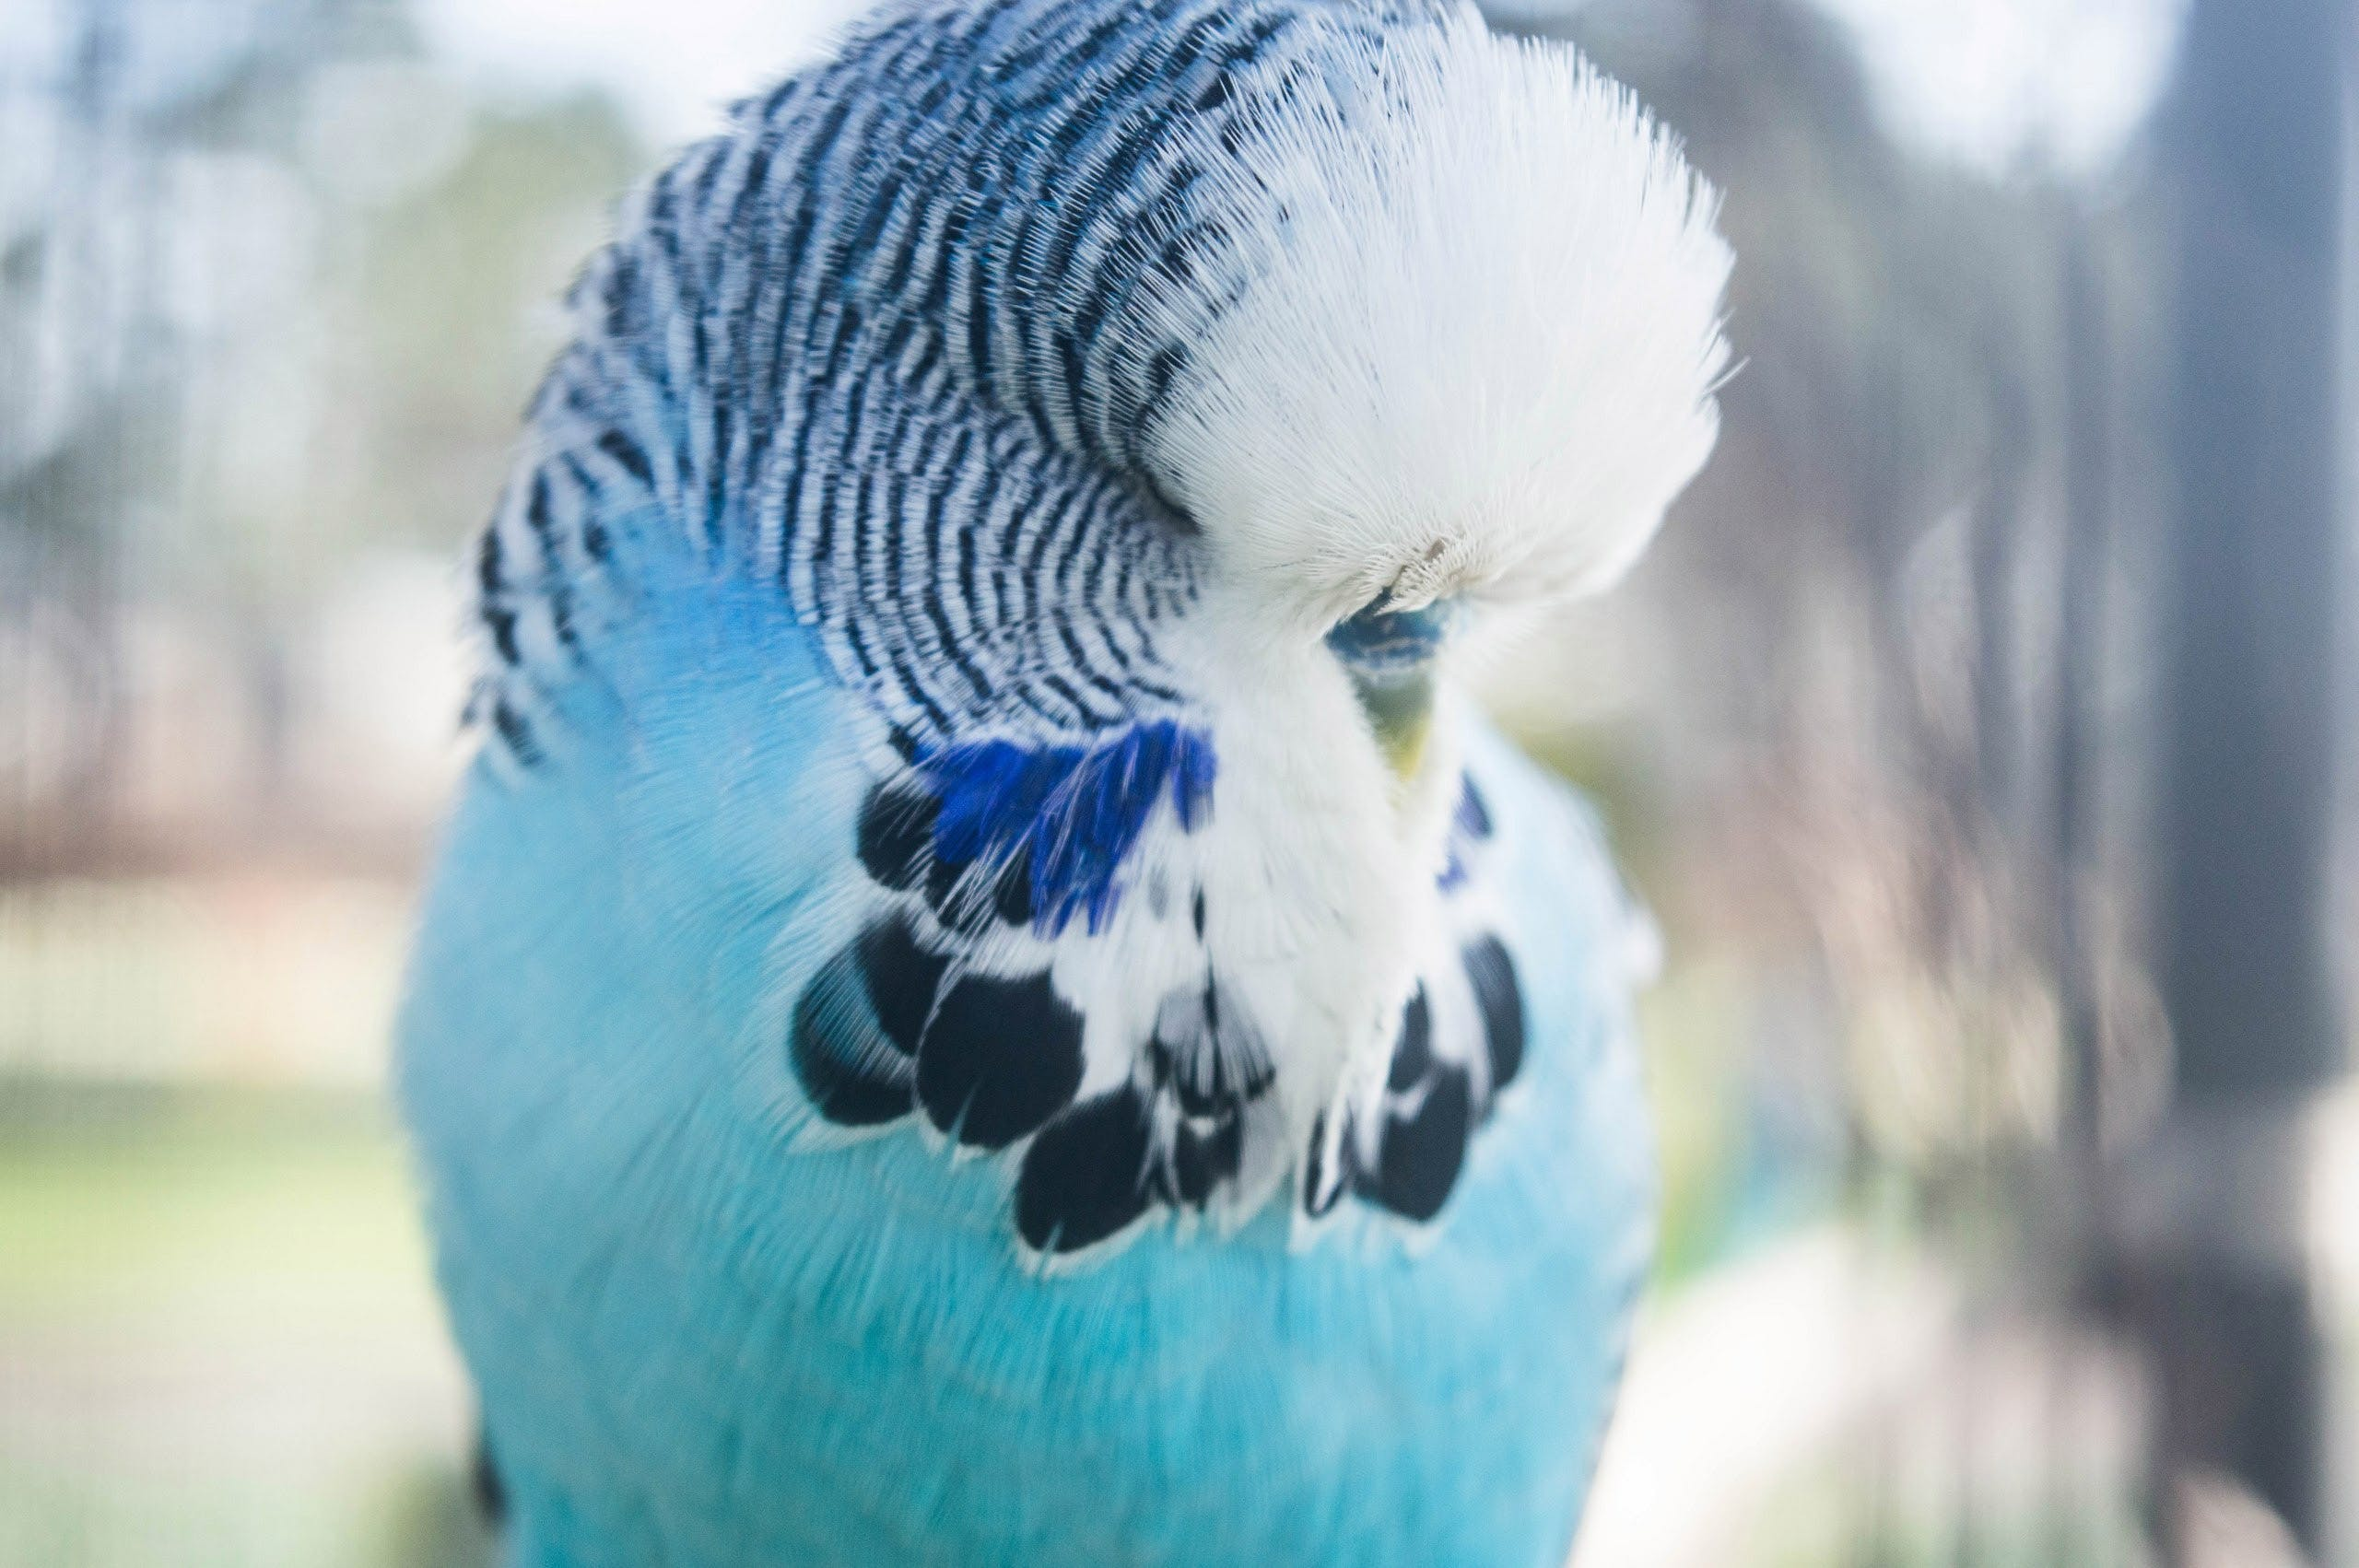 Free stock photo of bird, budgie